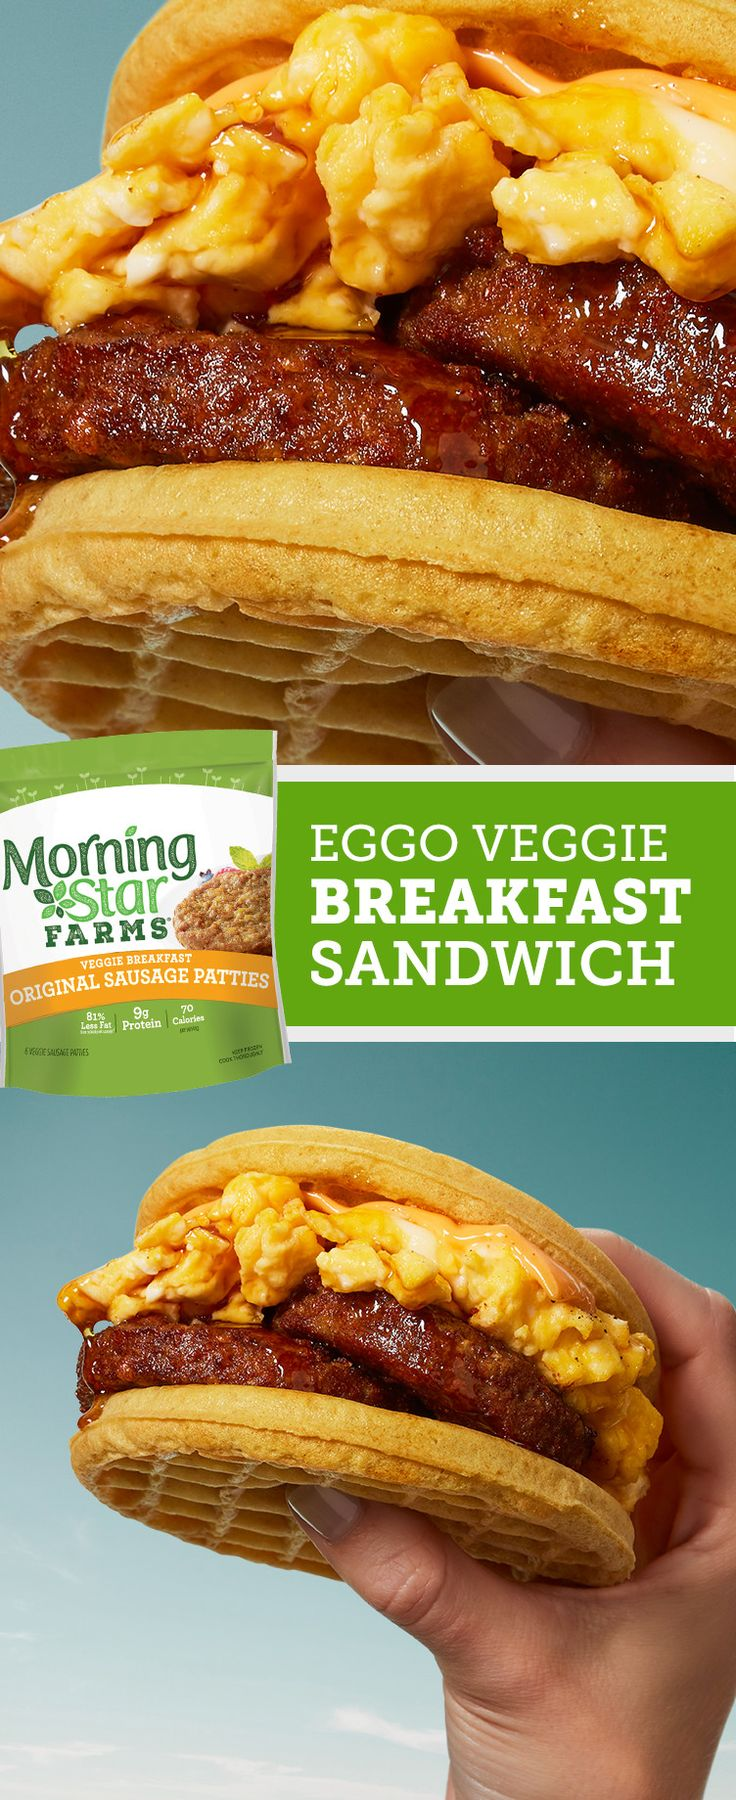 Try this easy, on-the-go breakfast recipe featuring our delicious, savory veggie sausage sandwiched between two Eggo waffles. Serving size 1 patty.